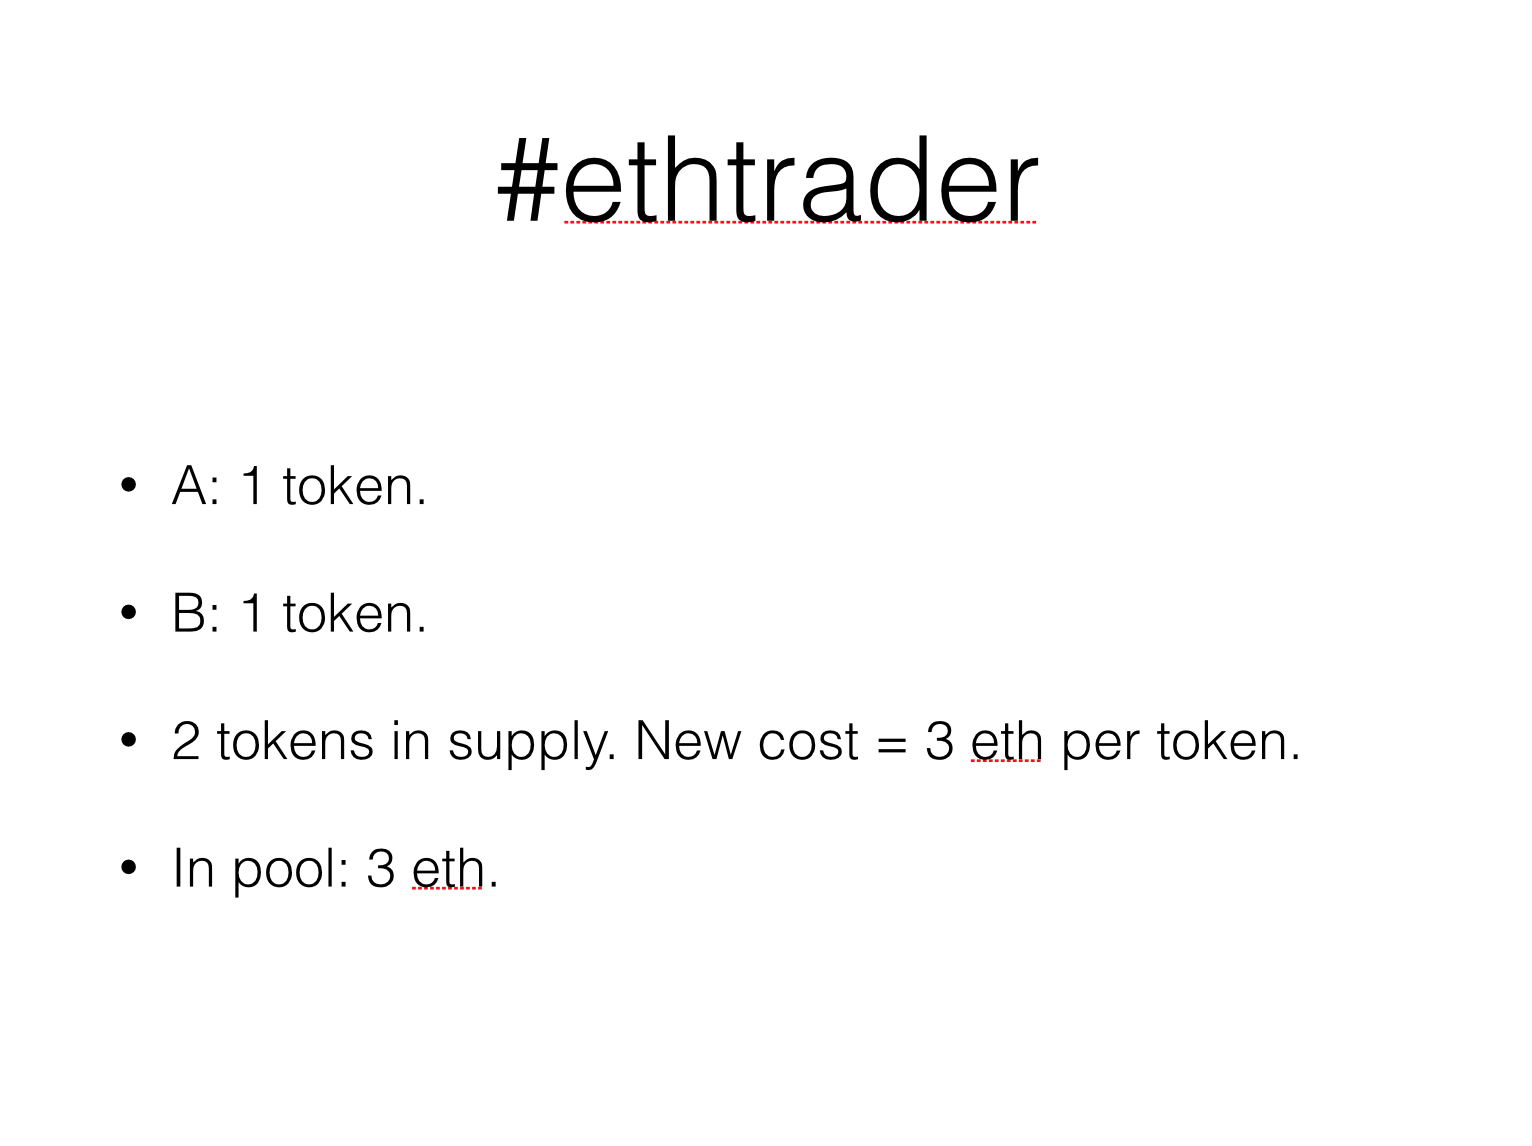 Person C Is Also Interested And Buys In Having To Pay 3 Eth For The Token Now